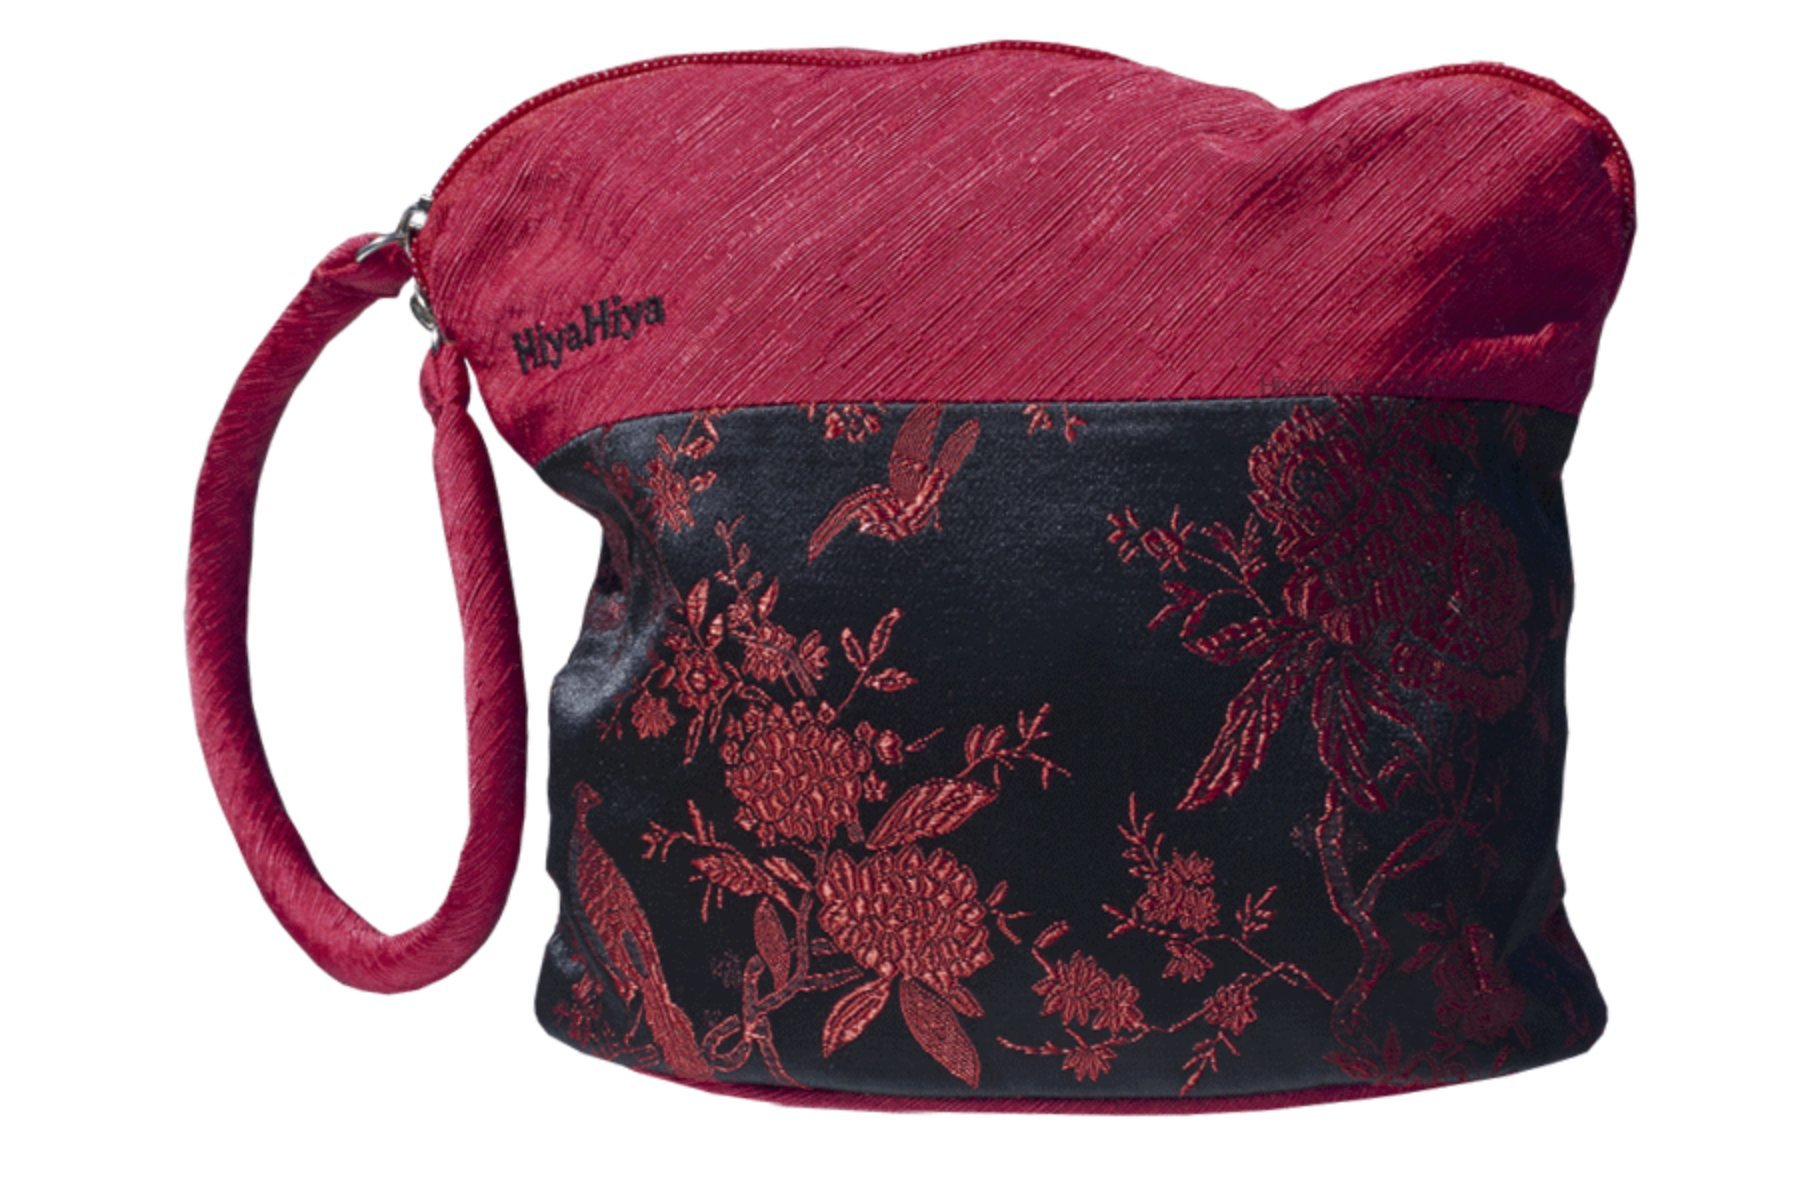 HiyaHiya Small Project Bag for Knit and Crochet - Red and Black Floral